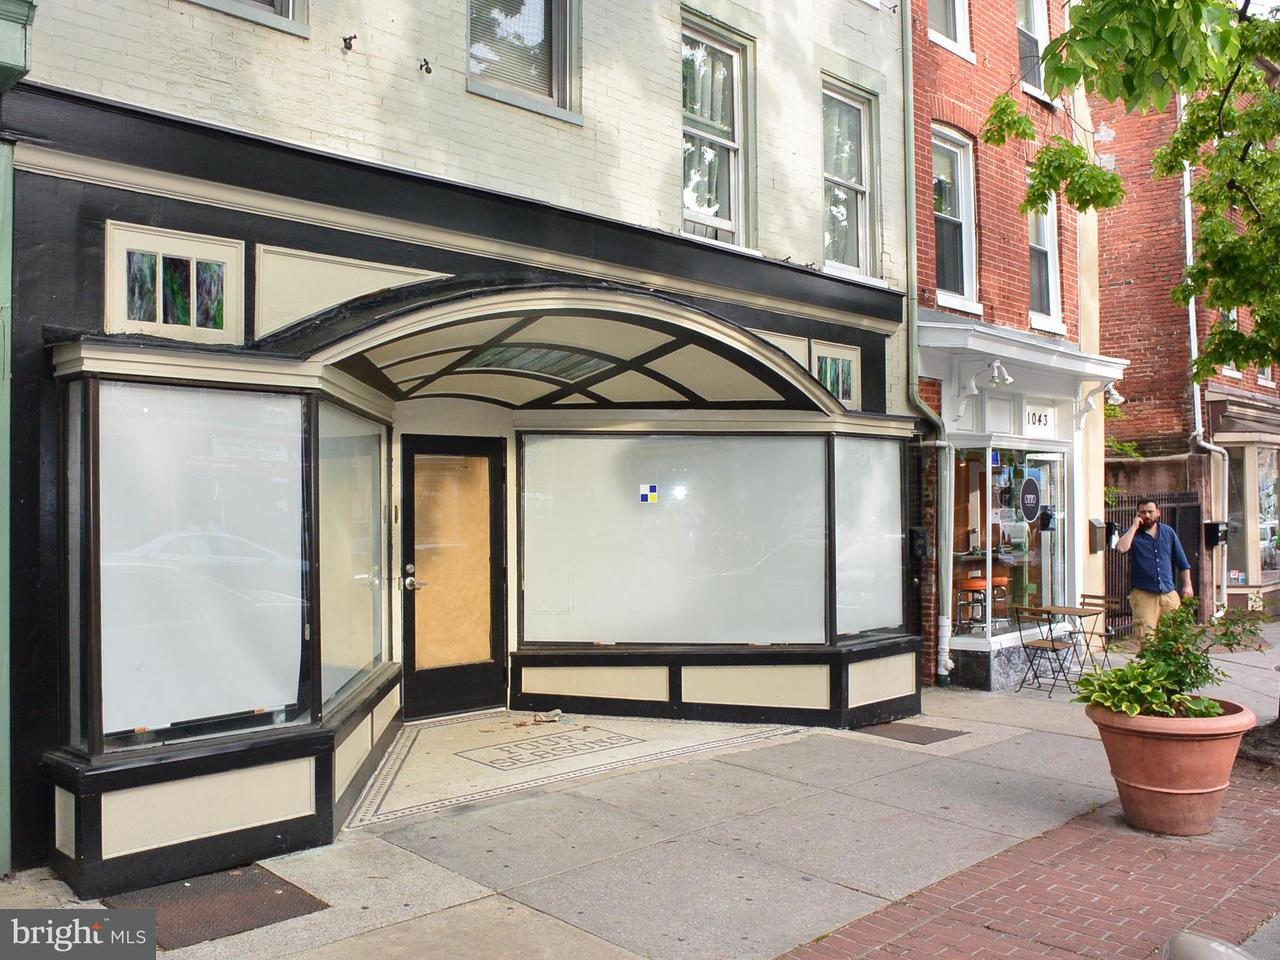 Other Residential for Rent at 1039 Charles St S Baltimore, Maryland 21230 United States